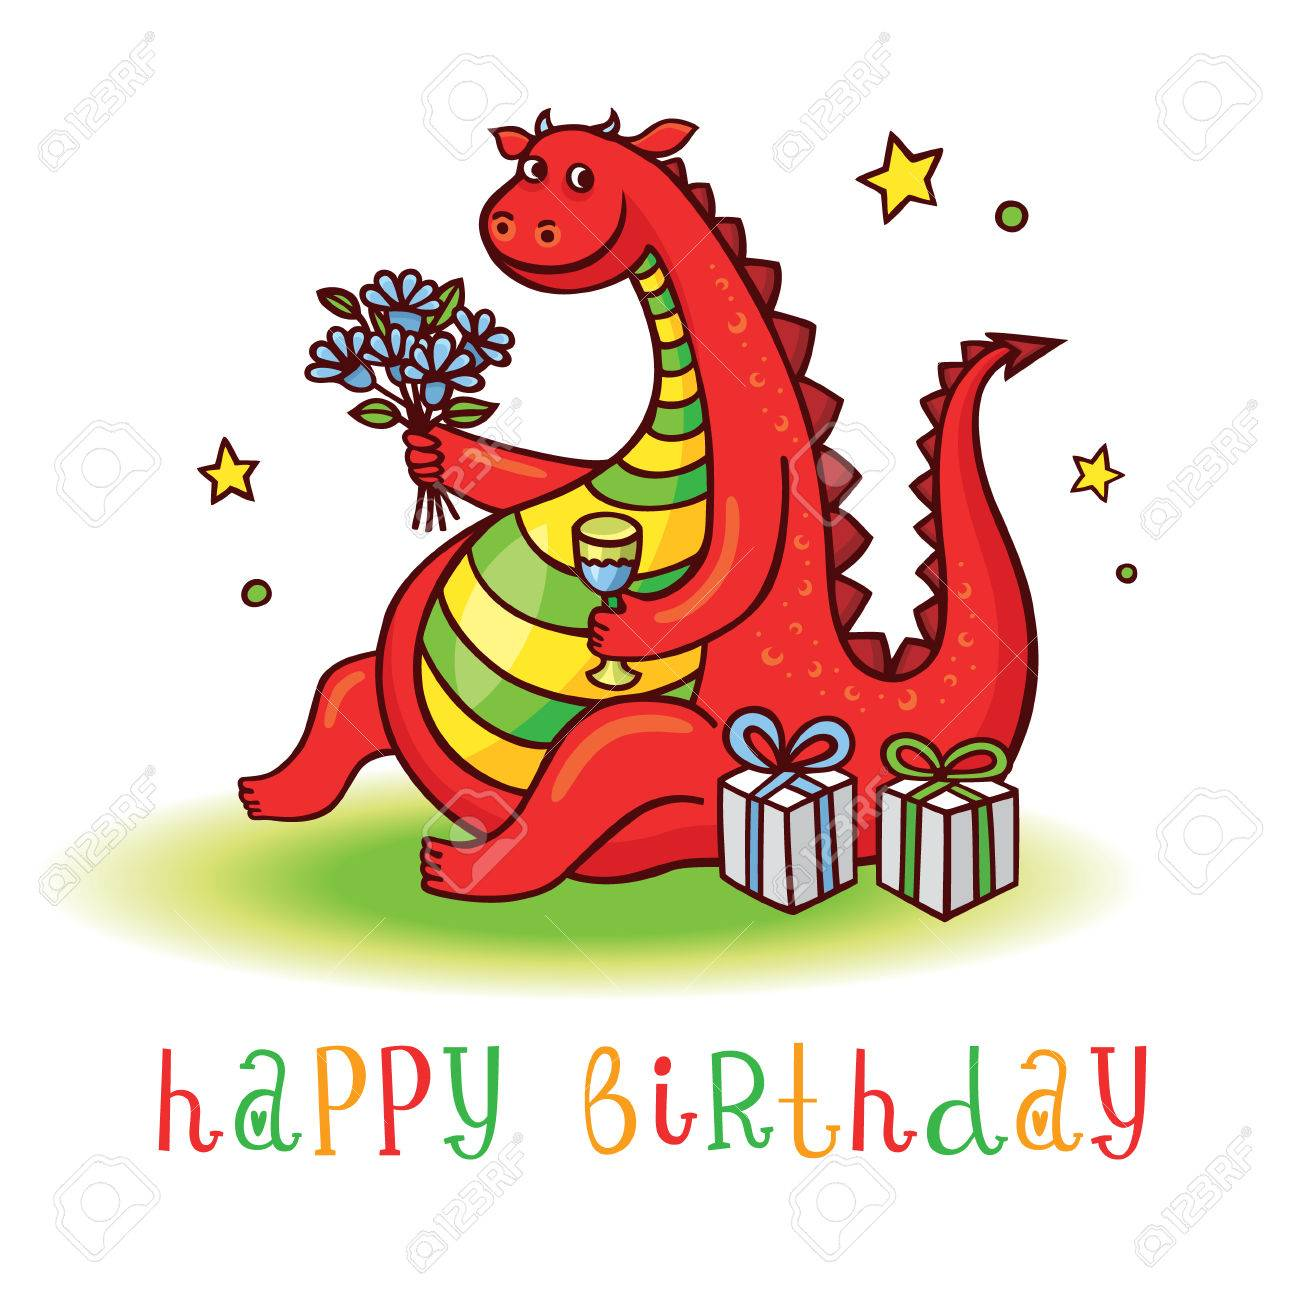 Playful Card With Funny Dragon At Birthday Party Happy Invitation Postcard Cute Dinosaur